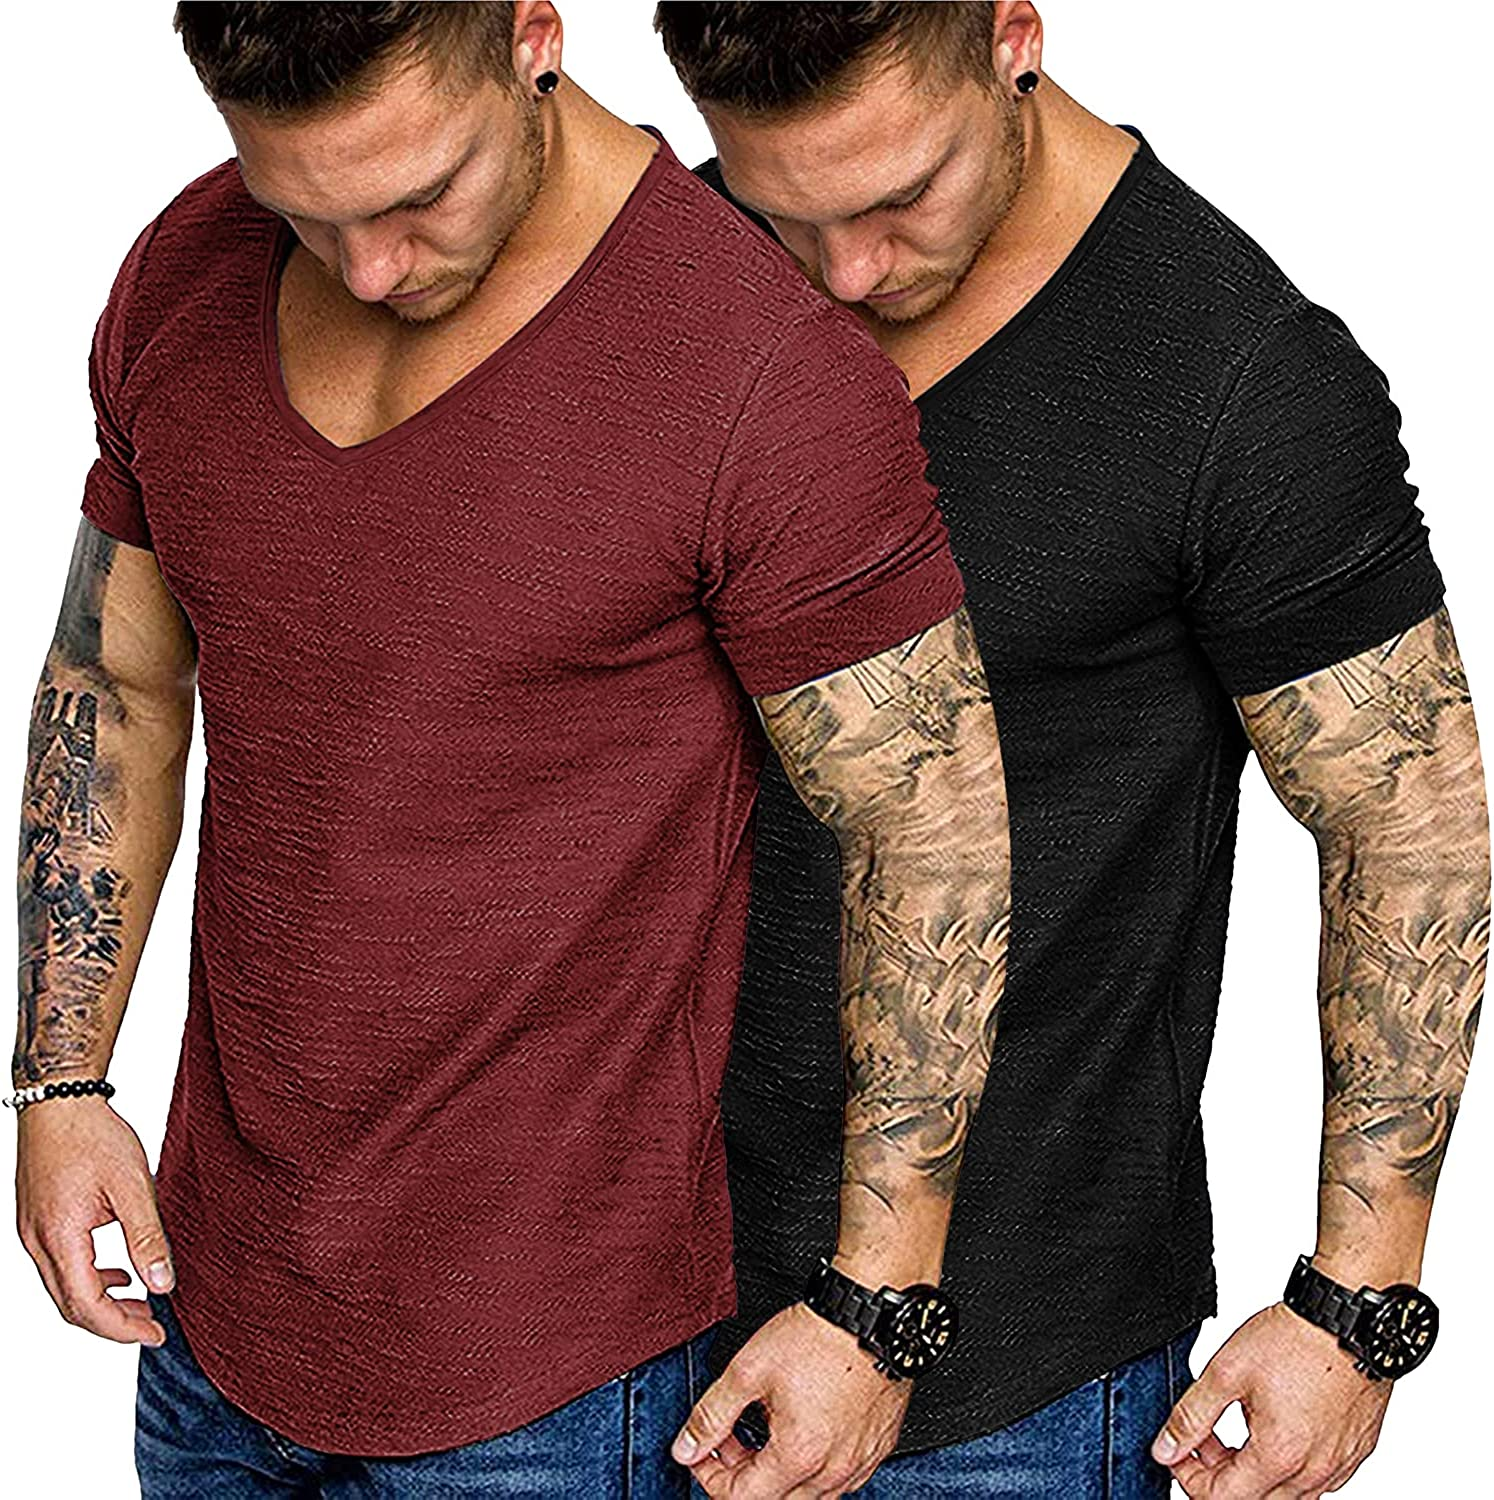 COOFANDY Mens 2 Pack Muscle V Neck T Shirt Fitted Gym Workout Short Sleeve Tee